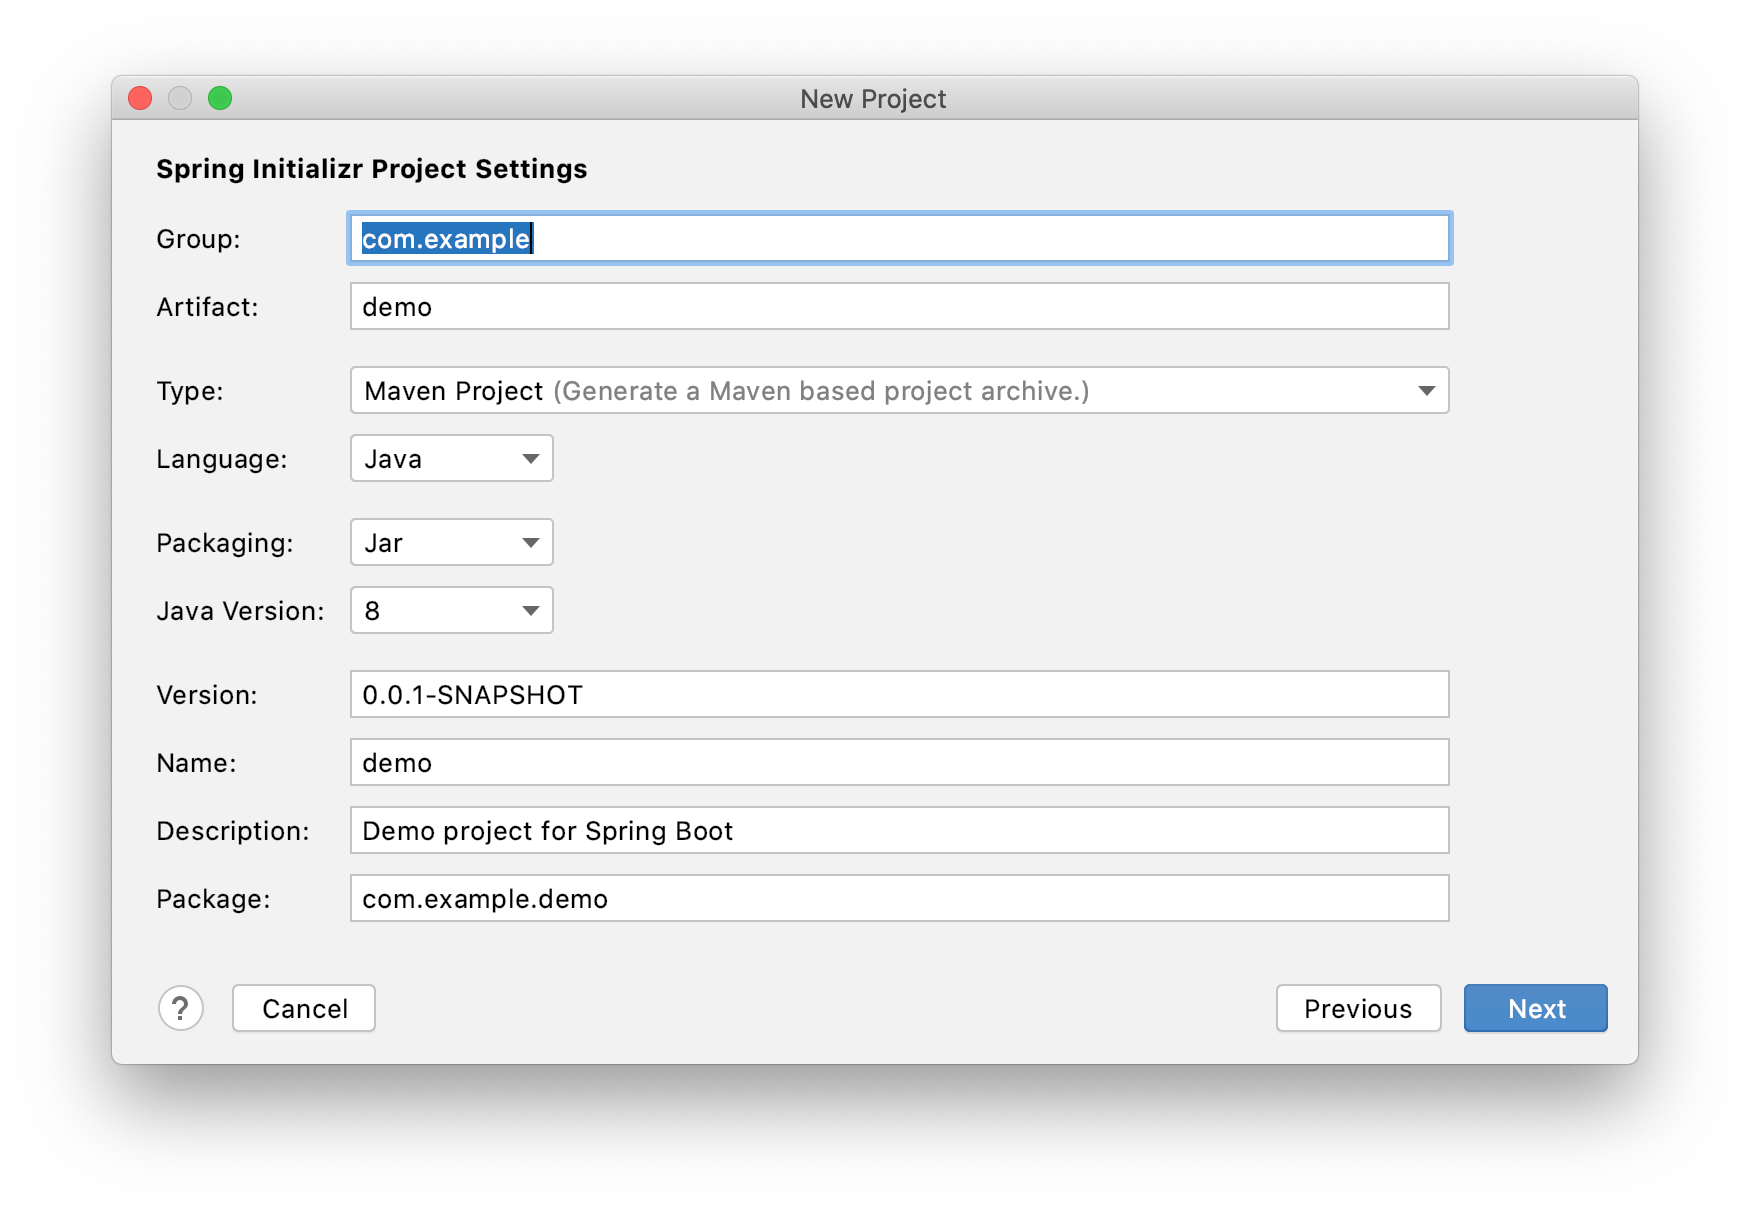 Spring Initializr Project Settings